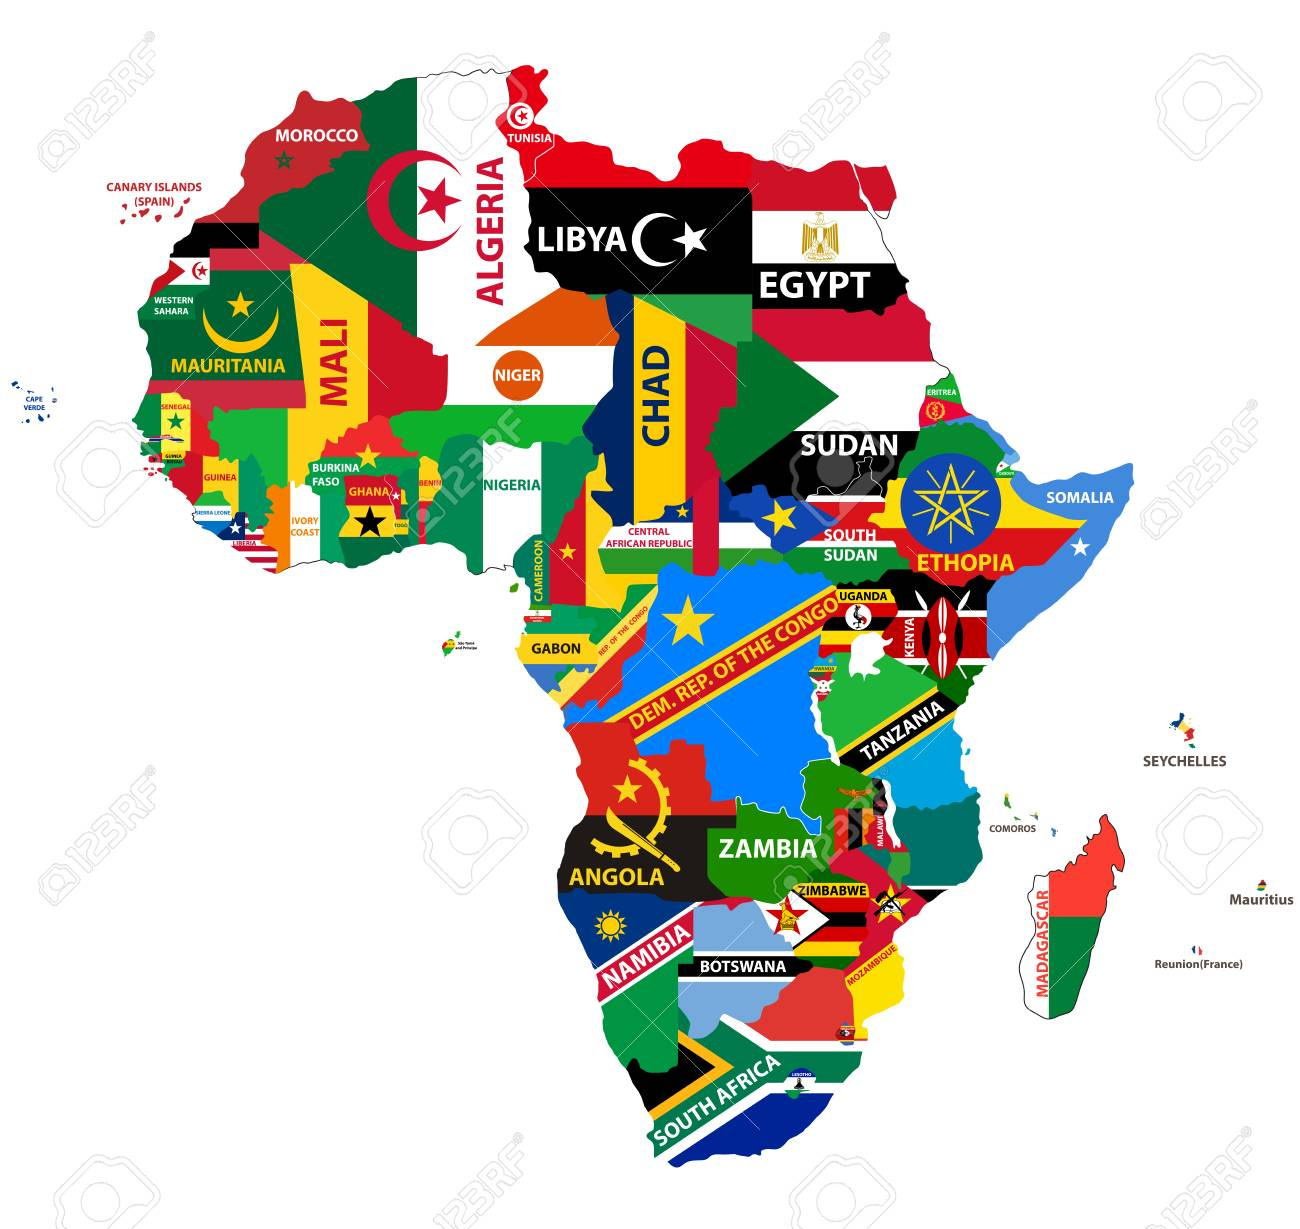 vector political map of Africa with all country flags - 93791438